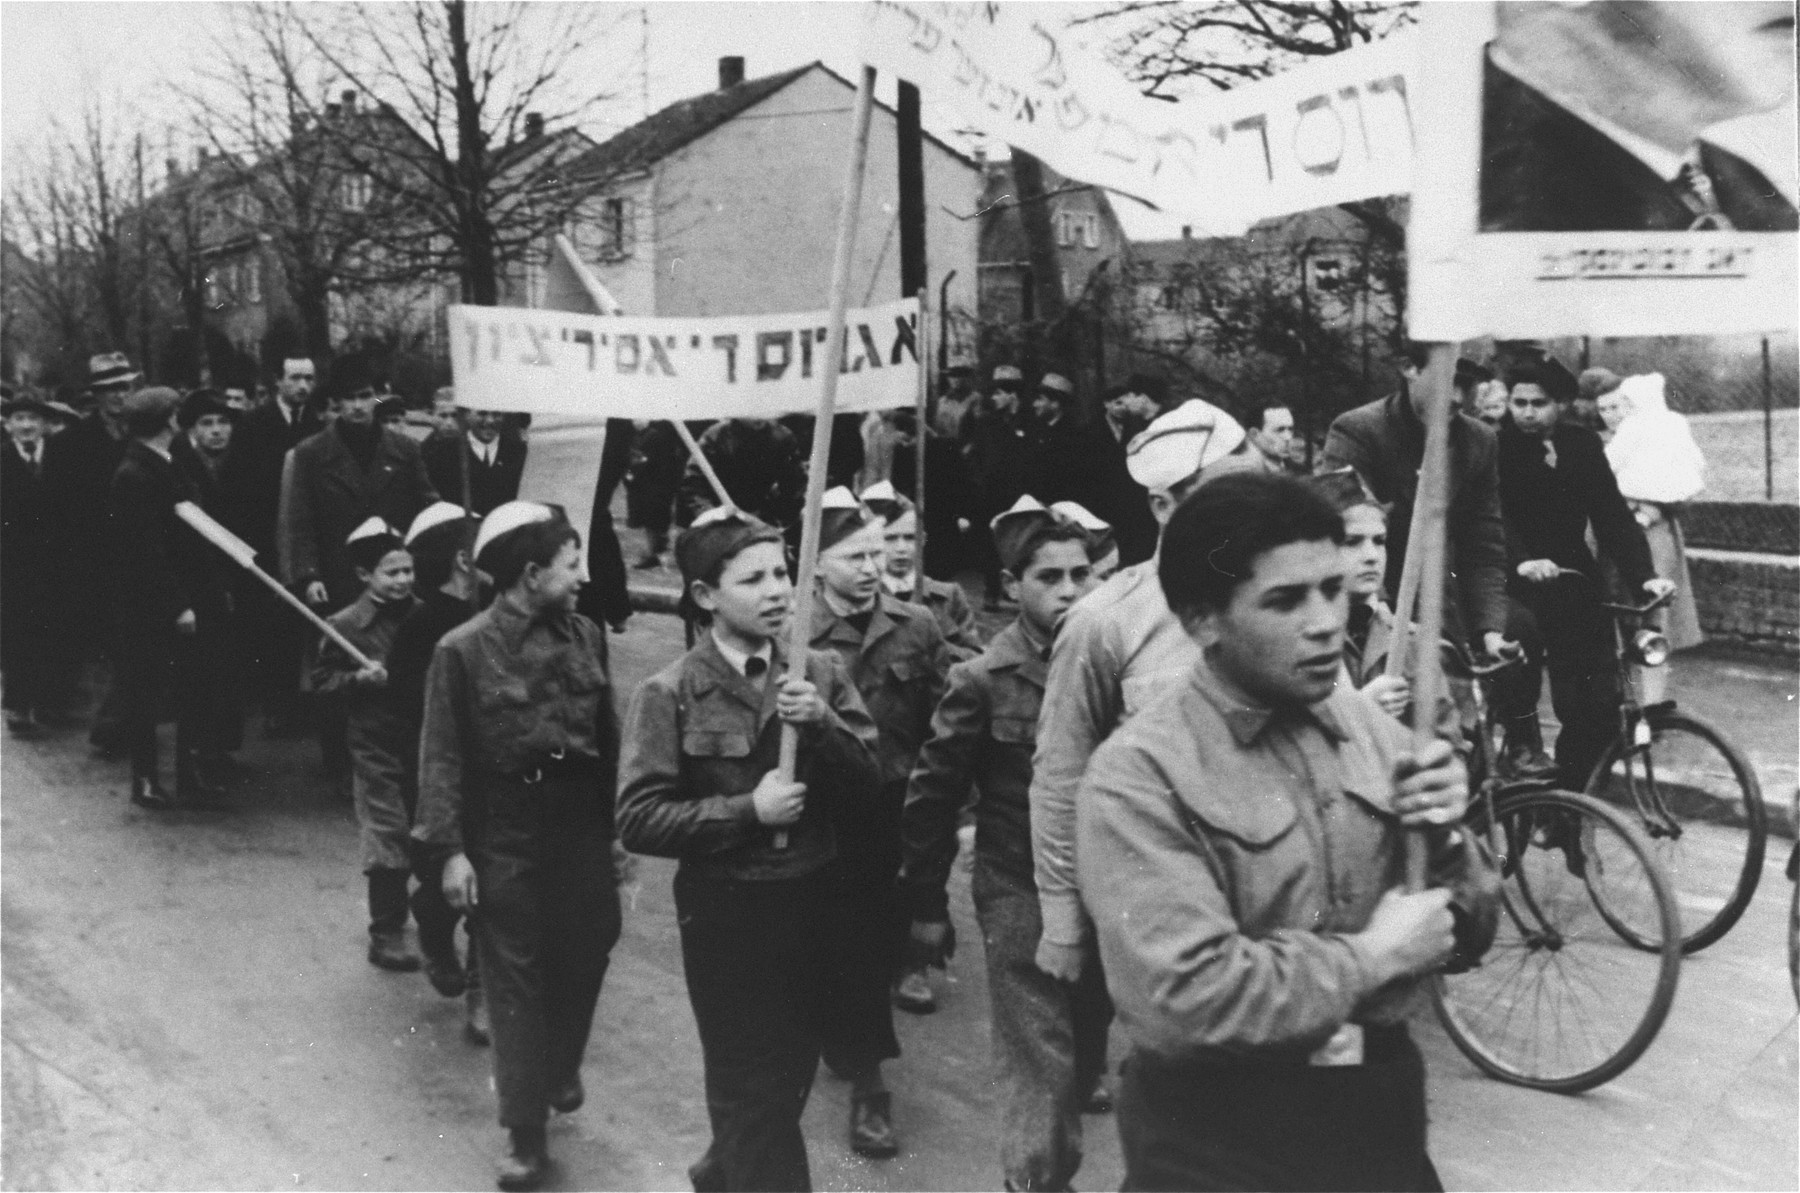 Children in the Zeilsheim displaced persons' camp carrying banners march in a demonstration for free immigration to Palestine.